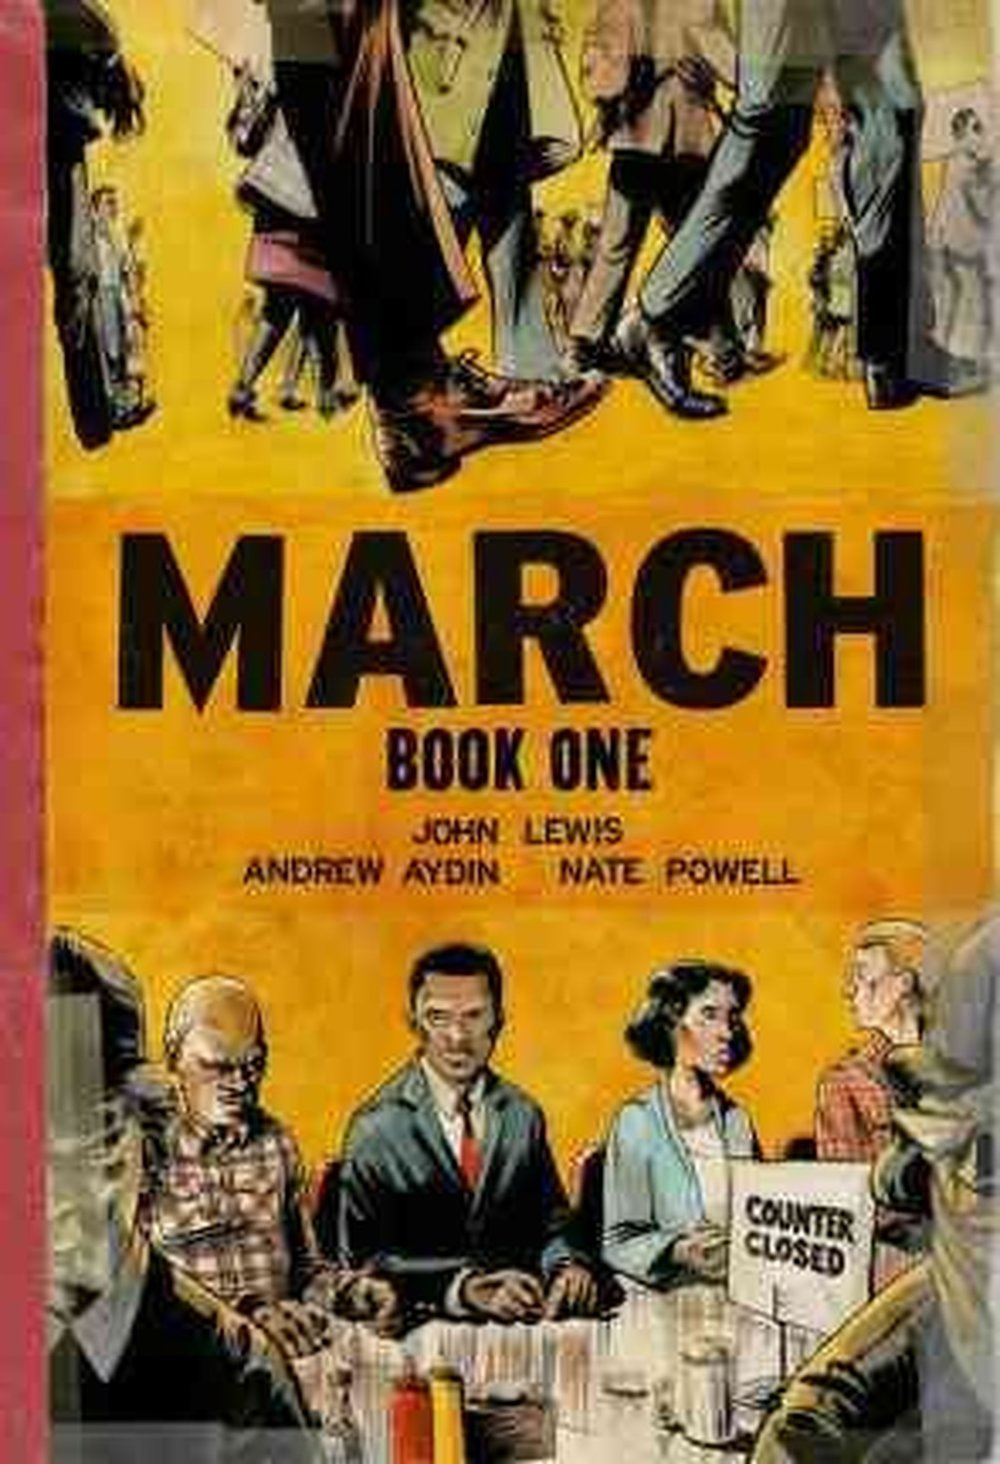 March, Book One by John Lewis Amazon | Goodreads